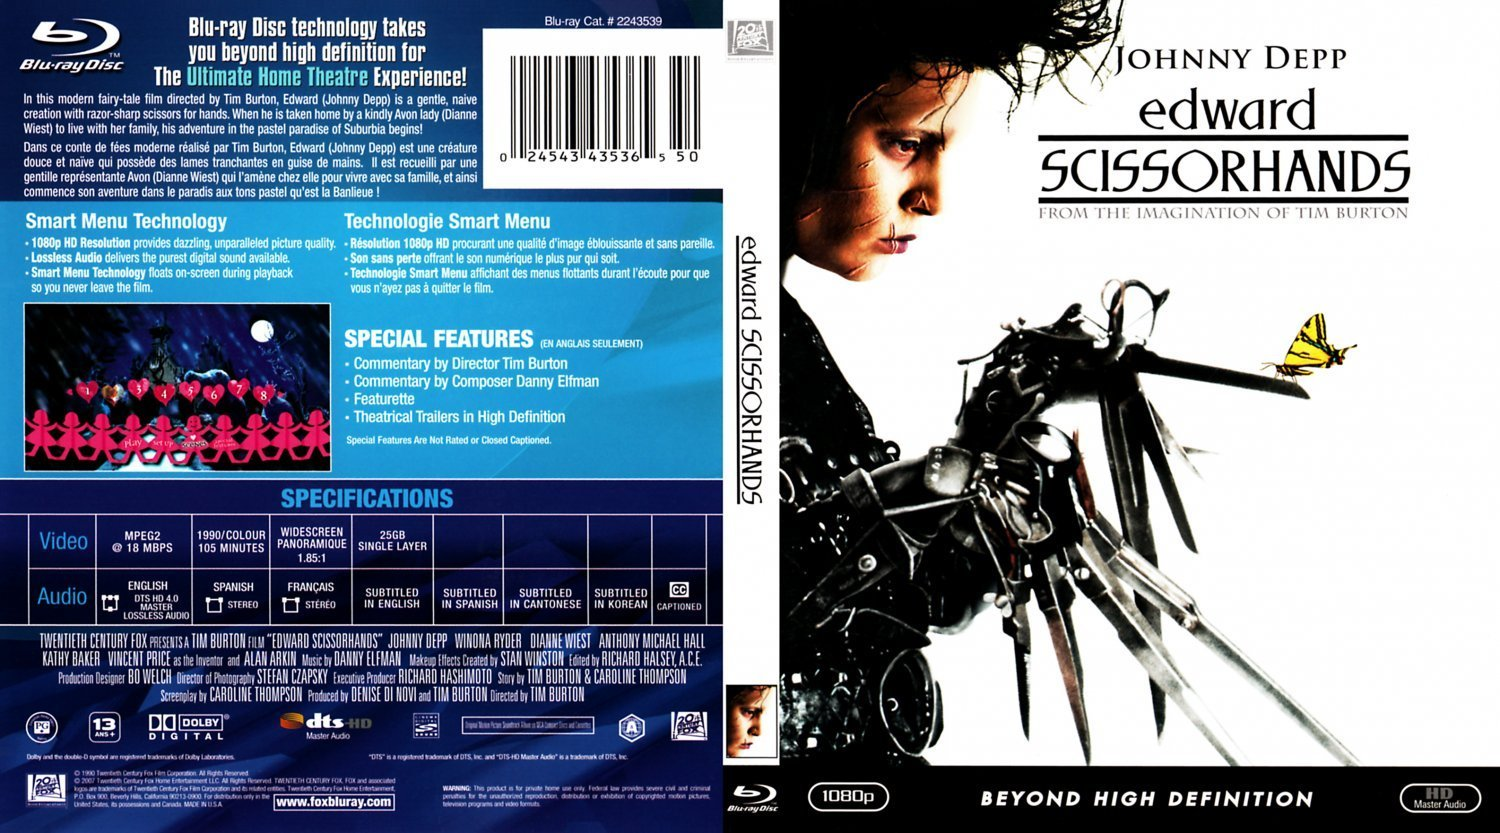 edward scissorhands movie review essay The movie edward scissorhands, emphasizes how hard it is for a person out of the norm to actually be accepted in society people judge others by their appearance before getting to know a person.